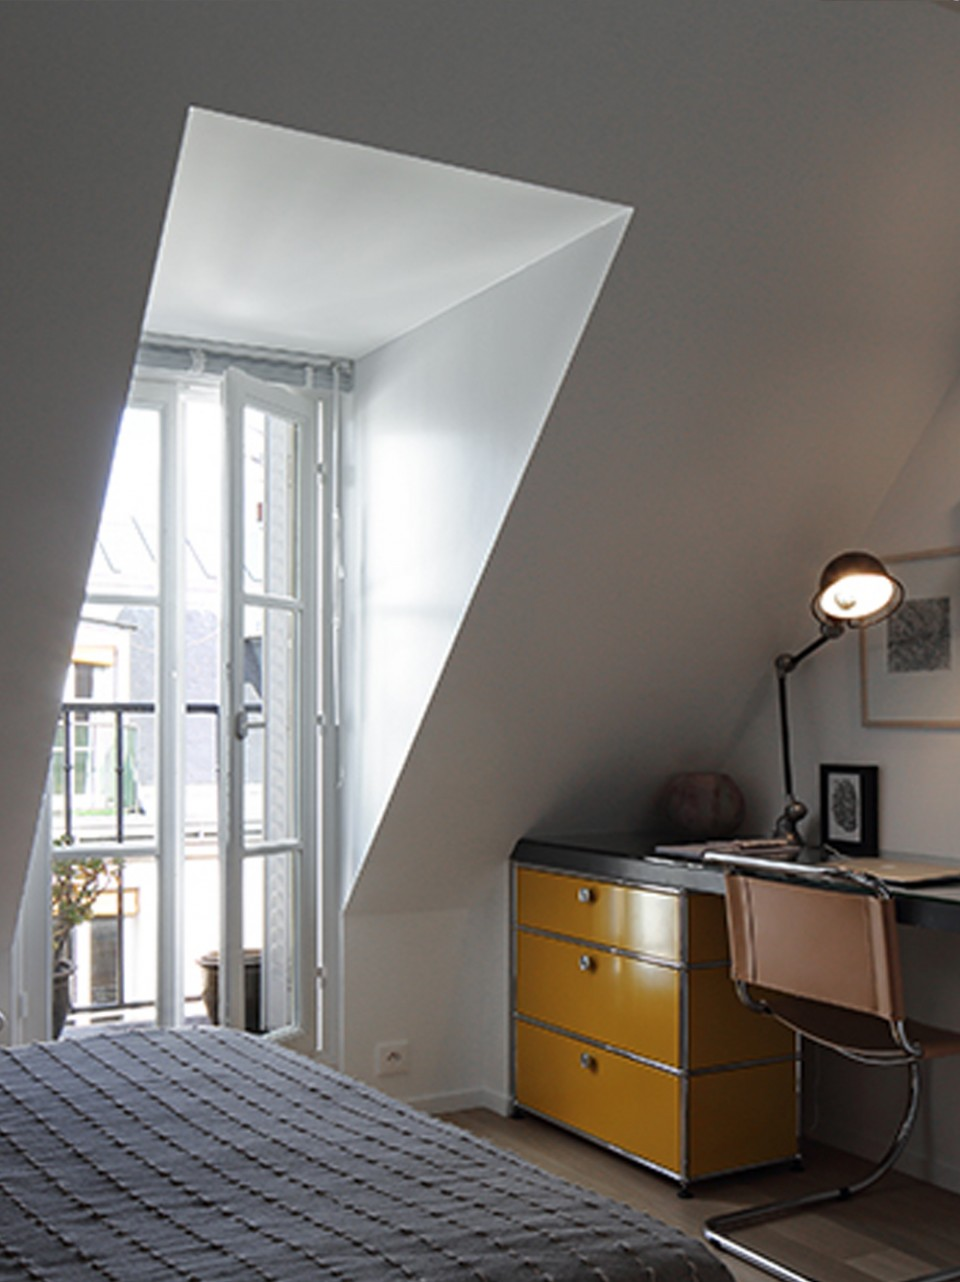 RENOVATION_APPARTEMENT_PARIS_MEZZANINE_APRES